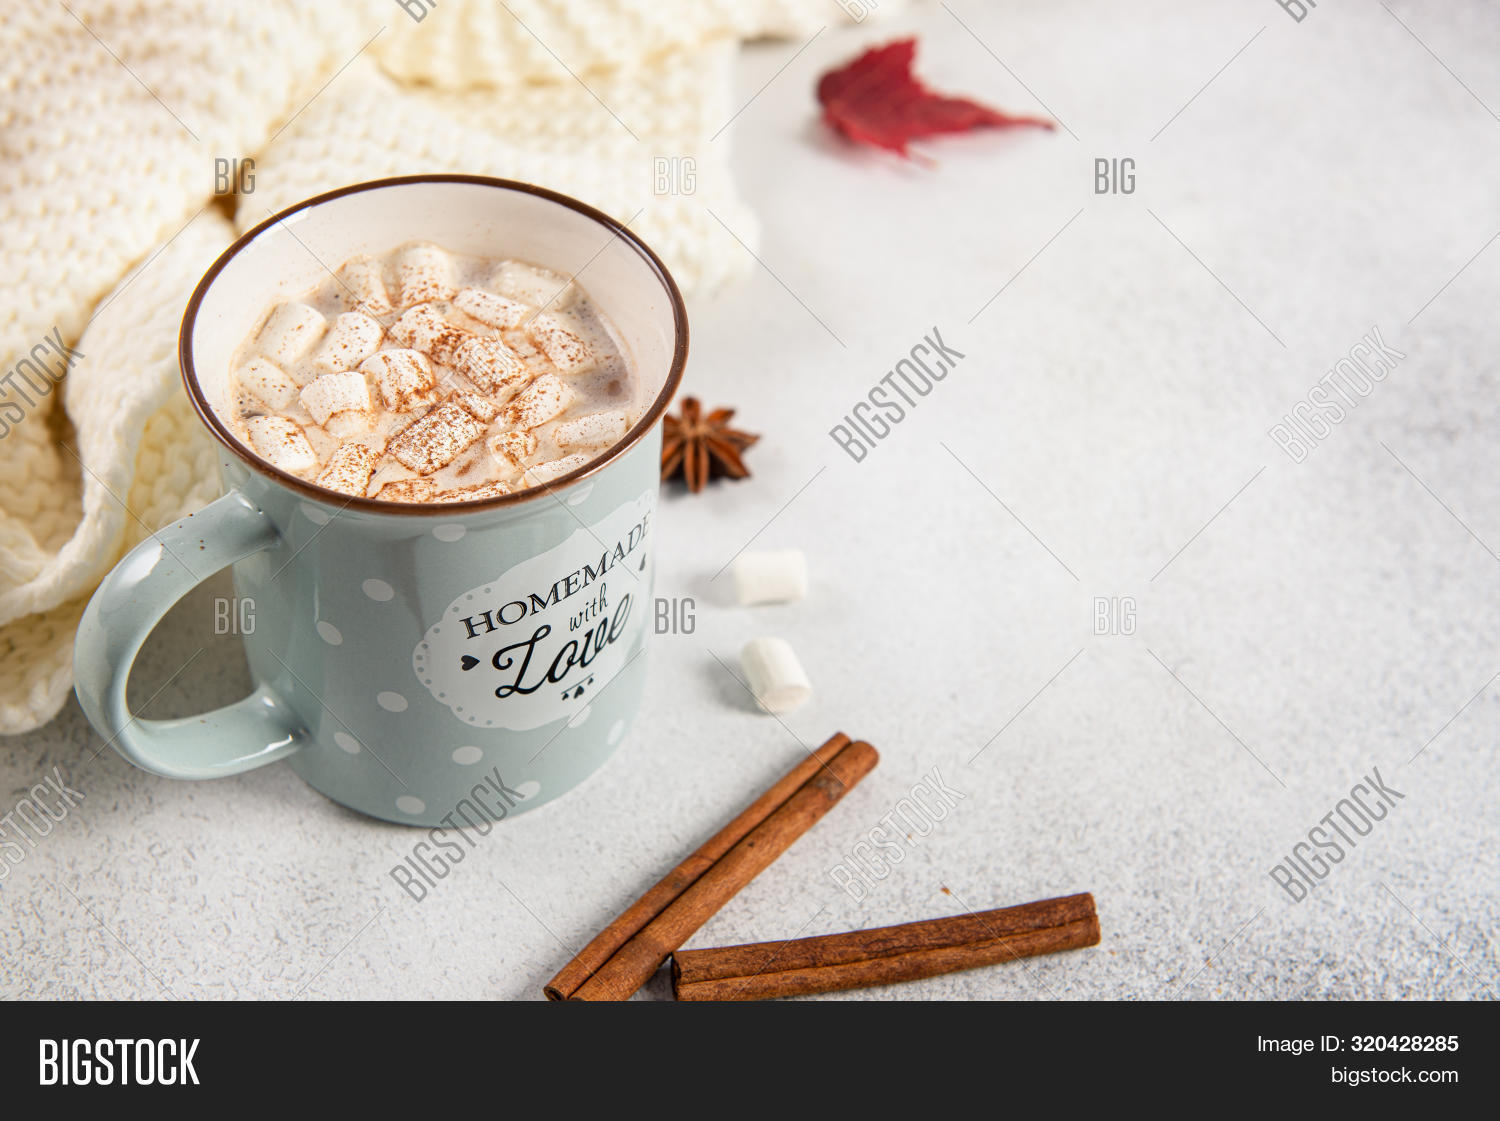 aroma,autumn,background,banner,beverage,breakfast,chocolate,closeup,cocoa,coffee,composition,concept,cozy,creative,cup,day,decoration,dessert,drink,fall,frame,halloween,holiday,home,hot,lay,leaf,leaves,mood,morning,mug,orange,pumpkin,red,romantic,rustic,sale,sweater,thanksgiving,trend,trendy,vacation,view,wallpaper,yellow,zzzaaoaaaieeebegfpdjdcdfdd